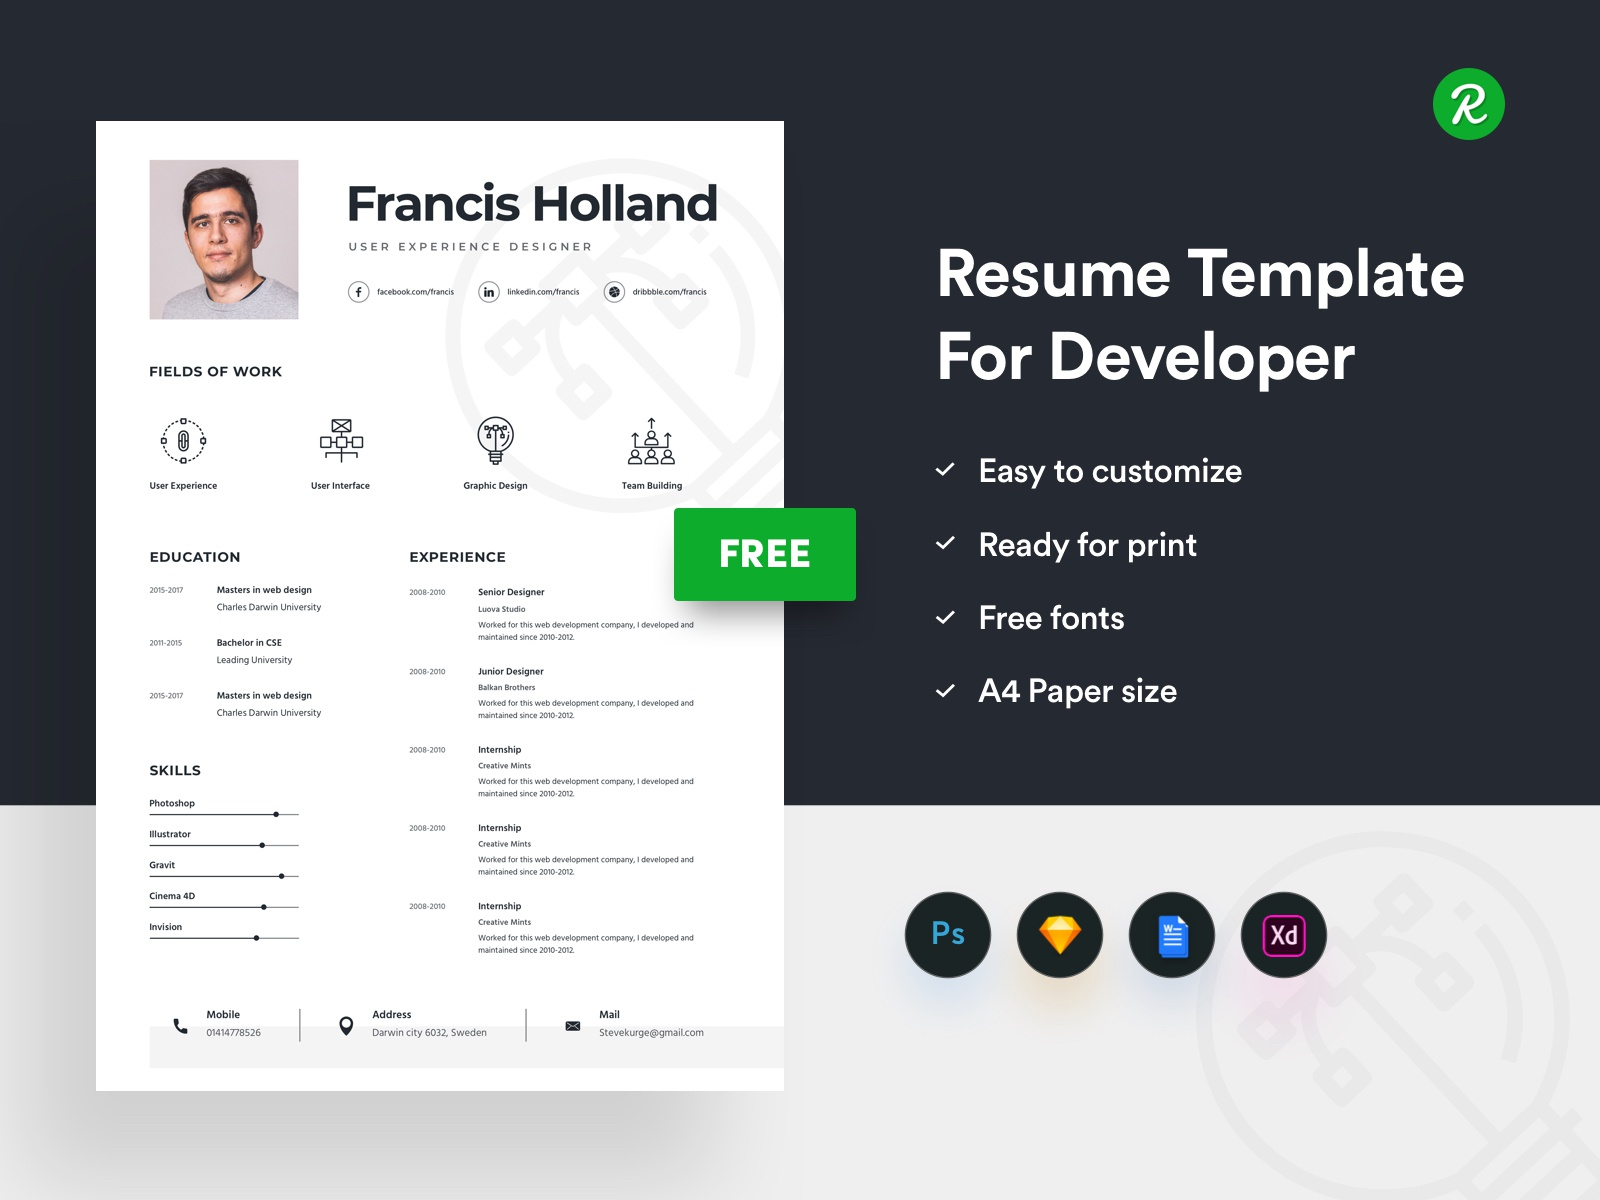 Free Resume Template For Designer by getresume.co - Dribbble